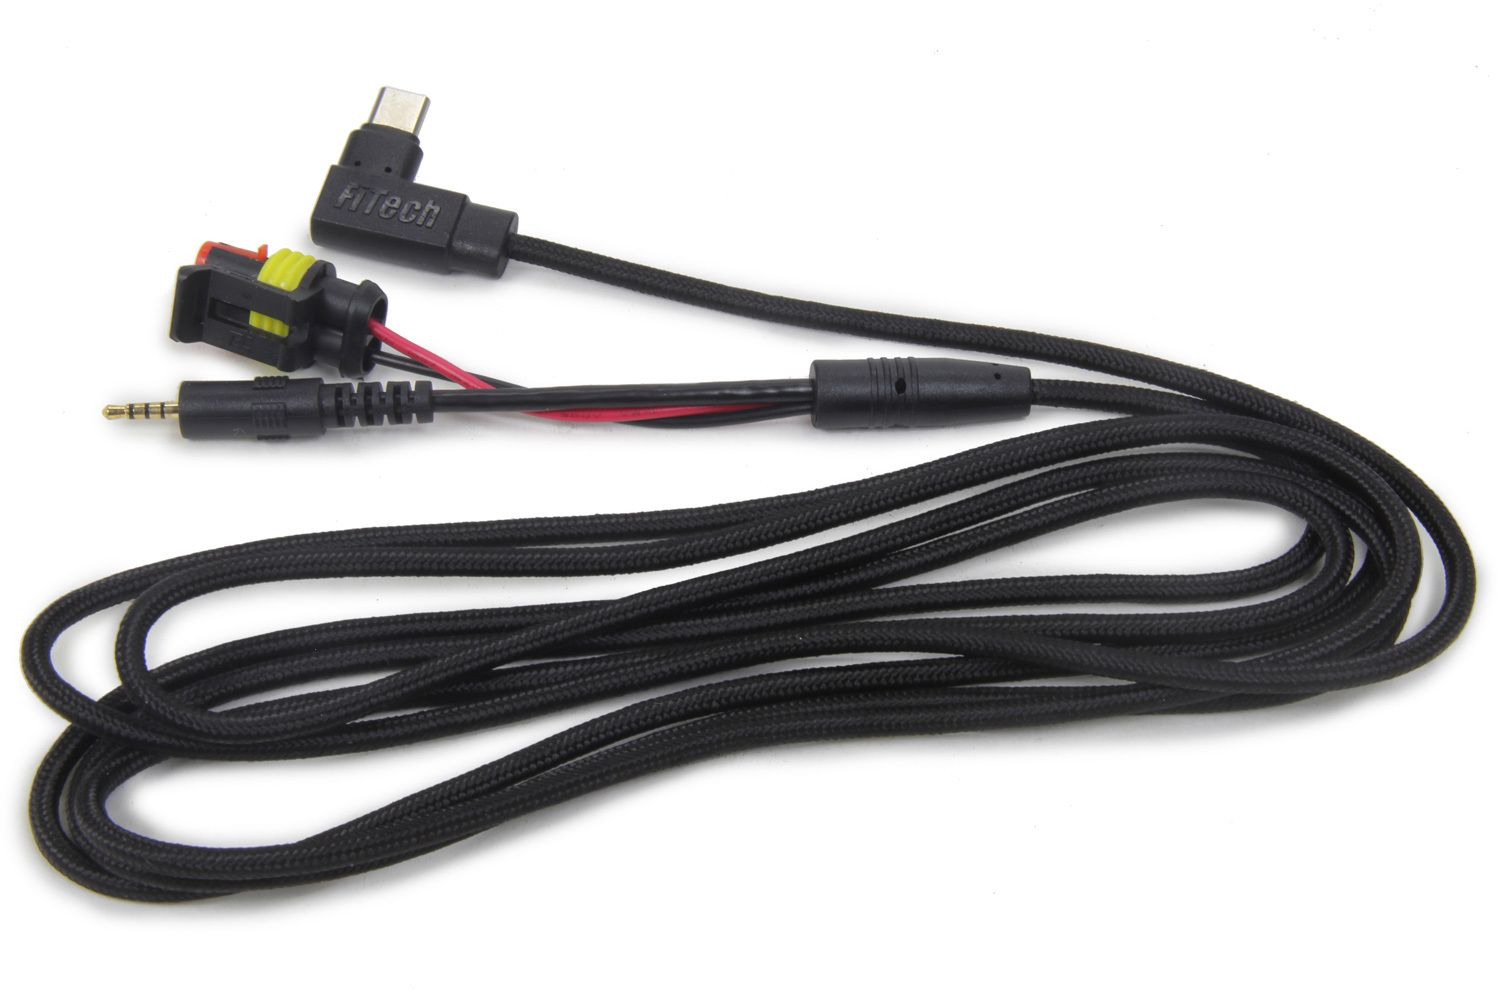 FiTech Fuel Injection 62015 Data Cable, Transmission Controller Cable, Rubber Coated, Black, Kit